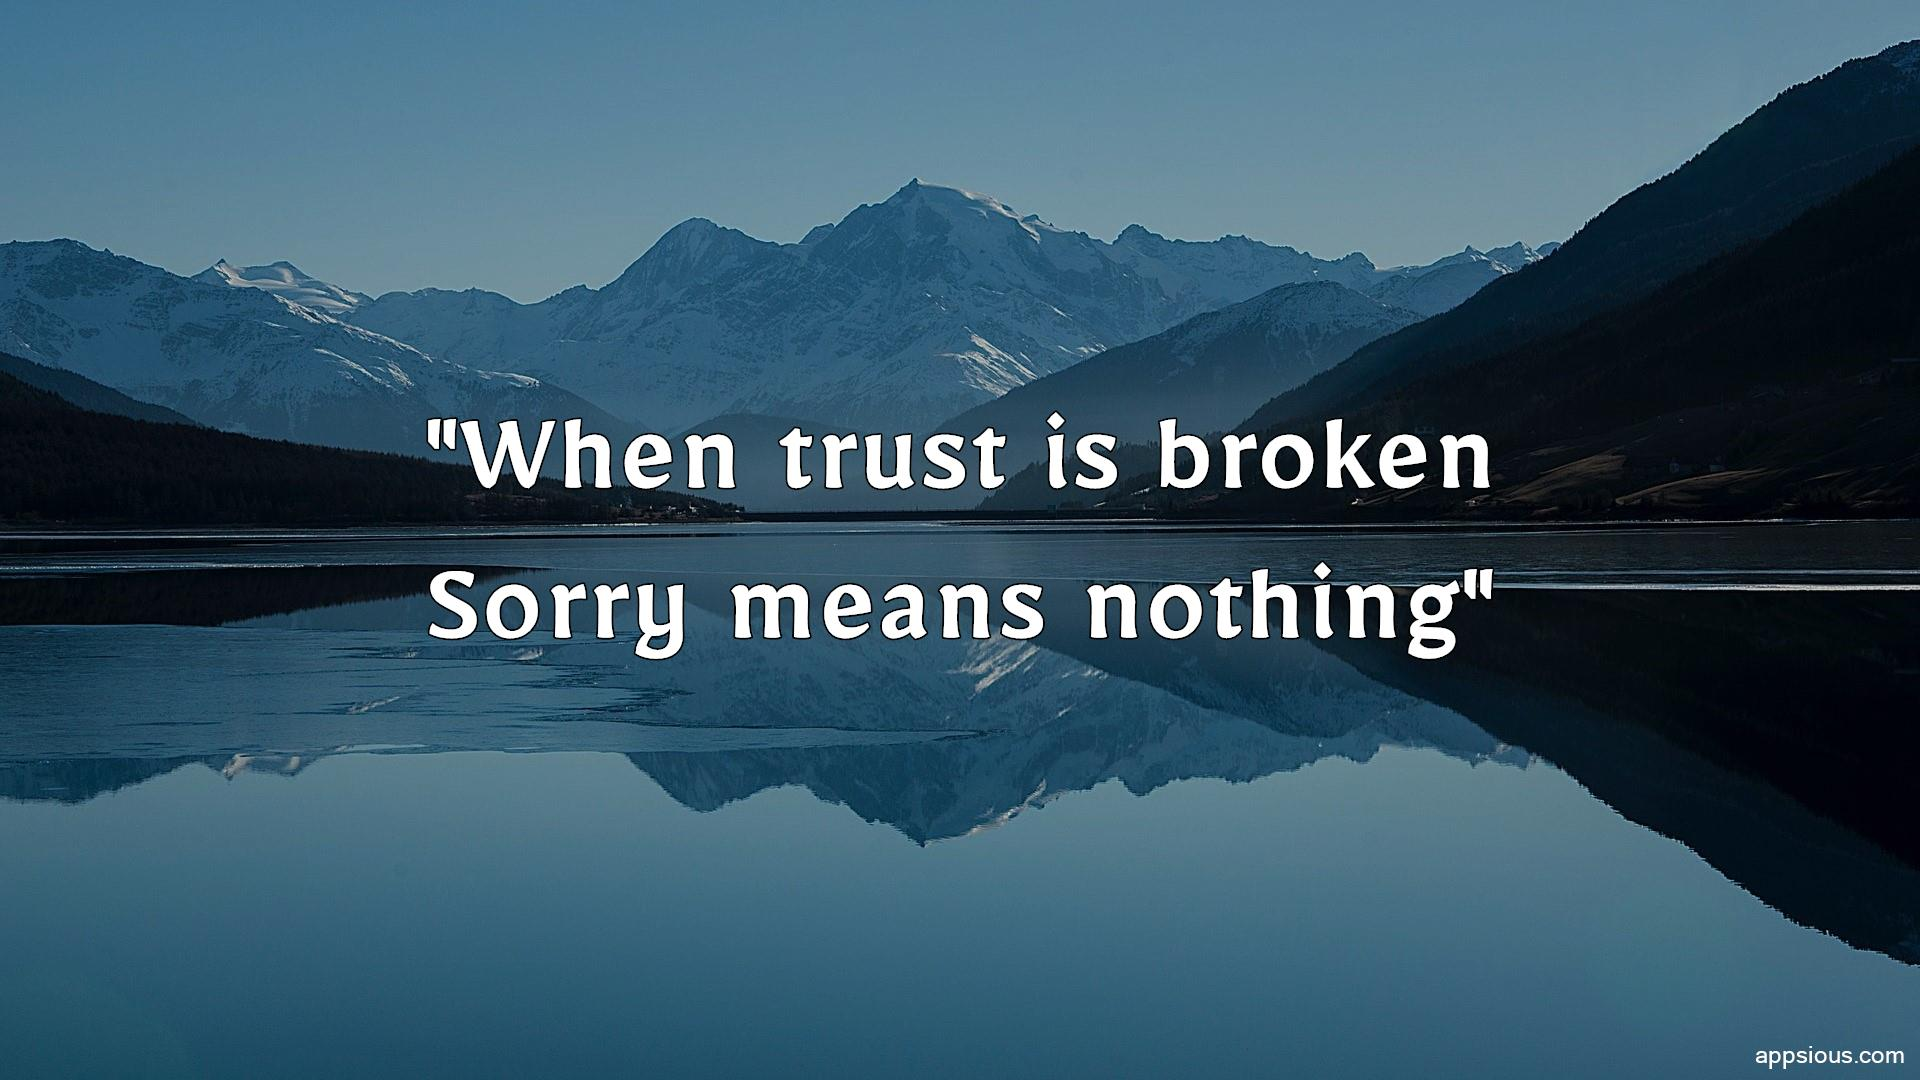 When trust is broken, Sorry means nothing